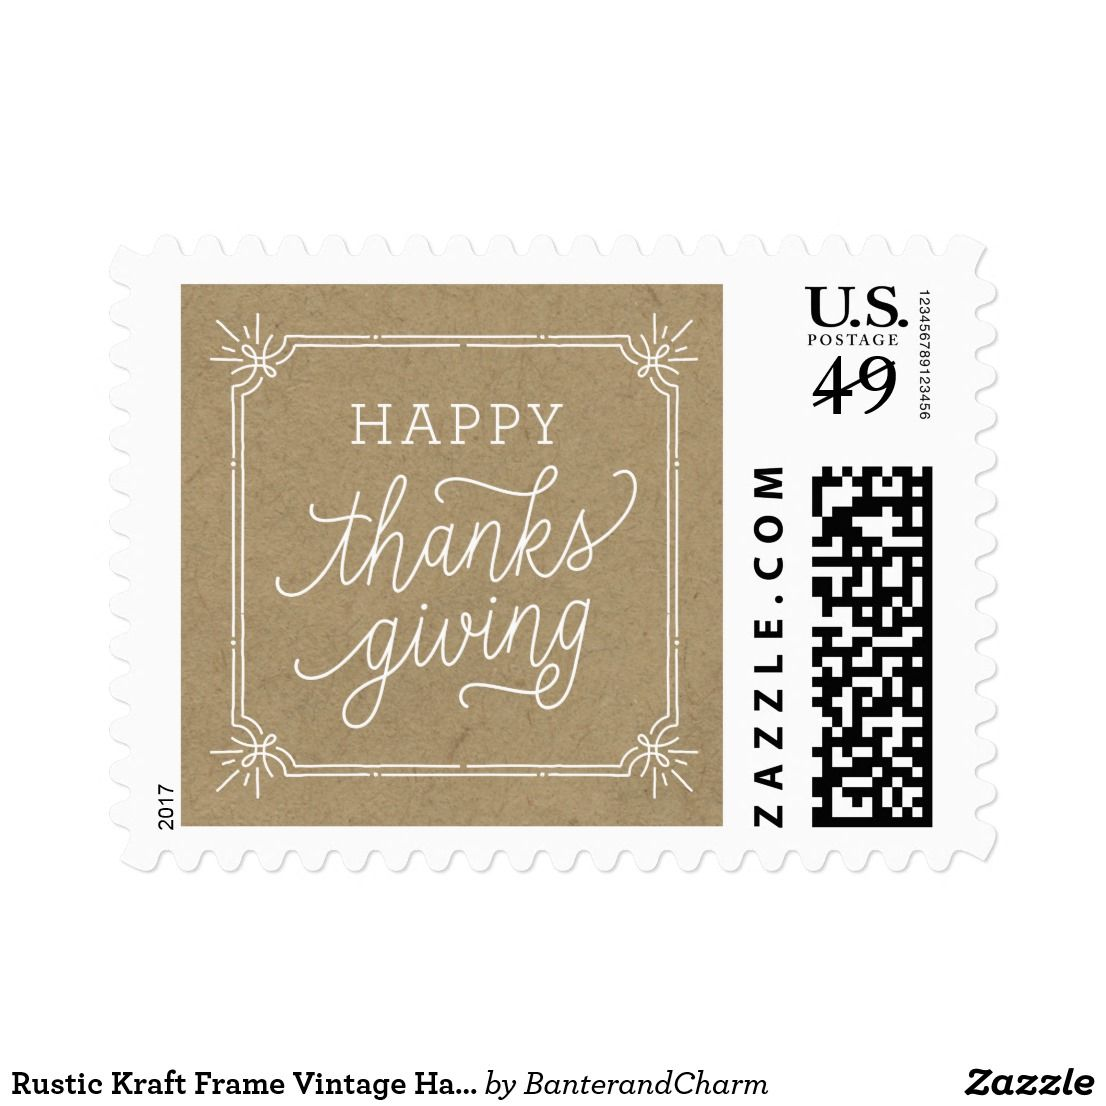 Rustic Kraft Frame Vintage Happy Thanksgiving Postage Put The Final Touches On Your Fall Cards And